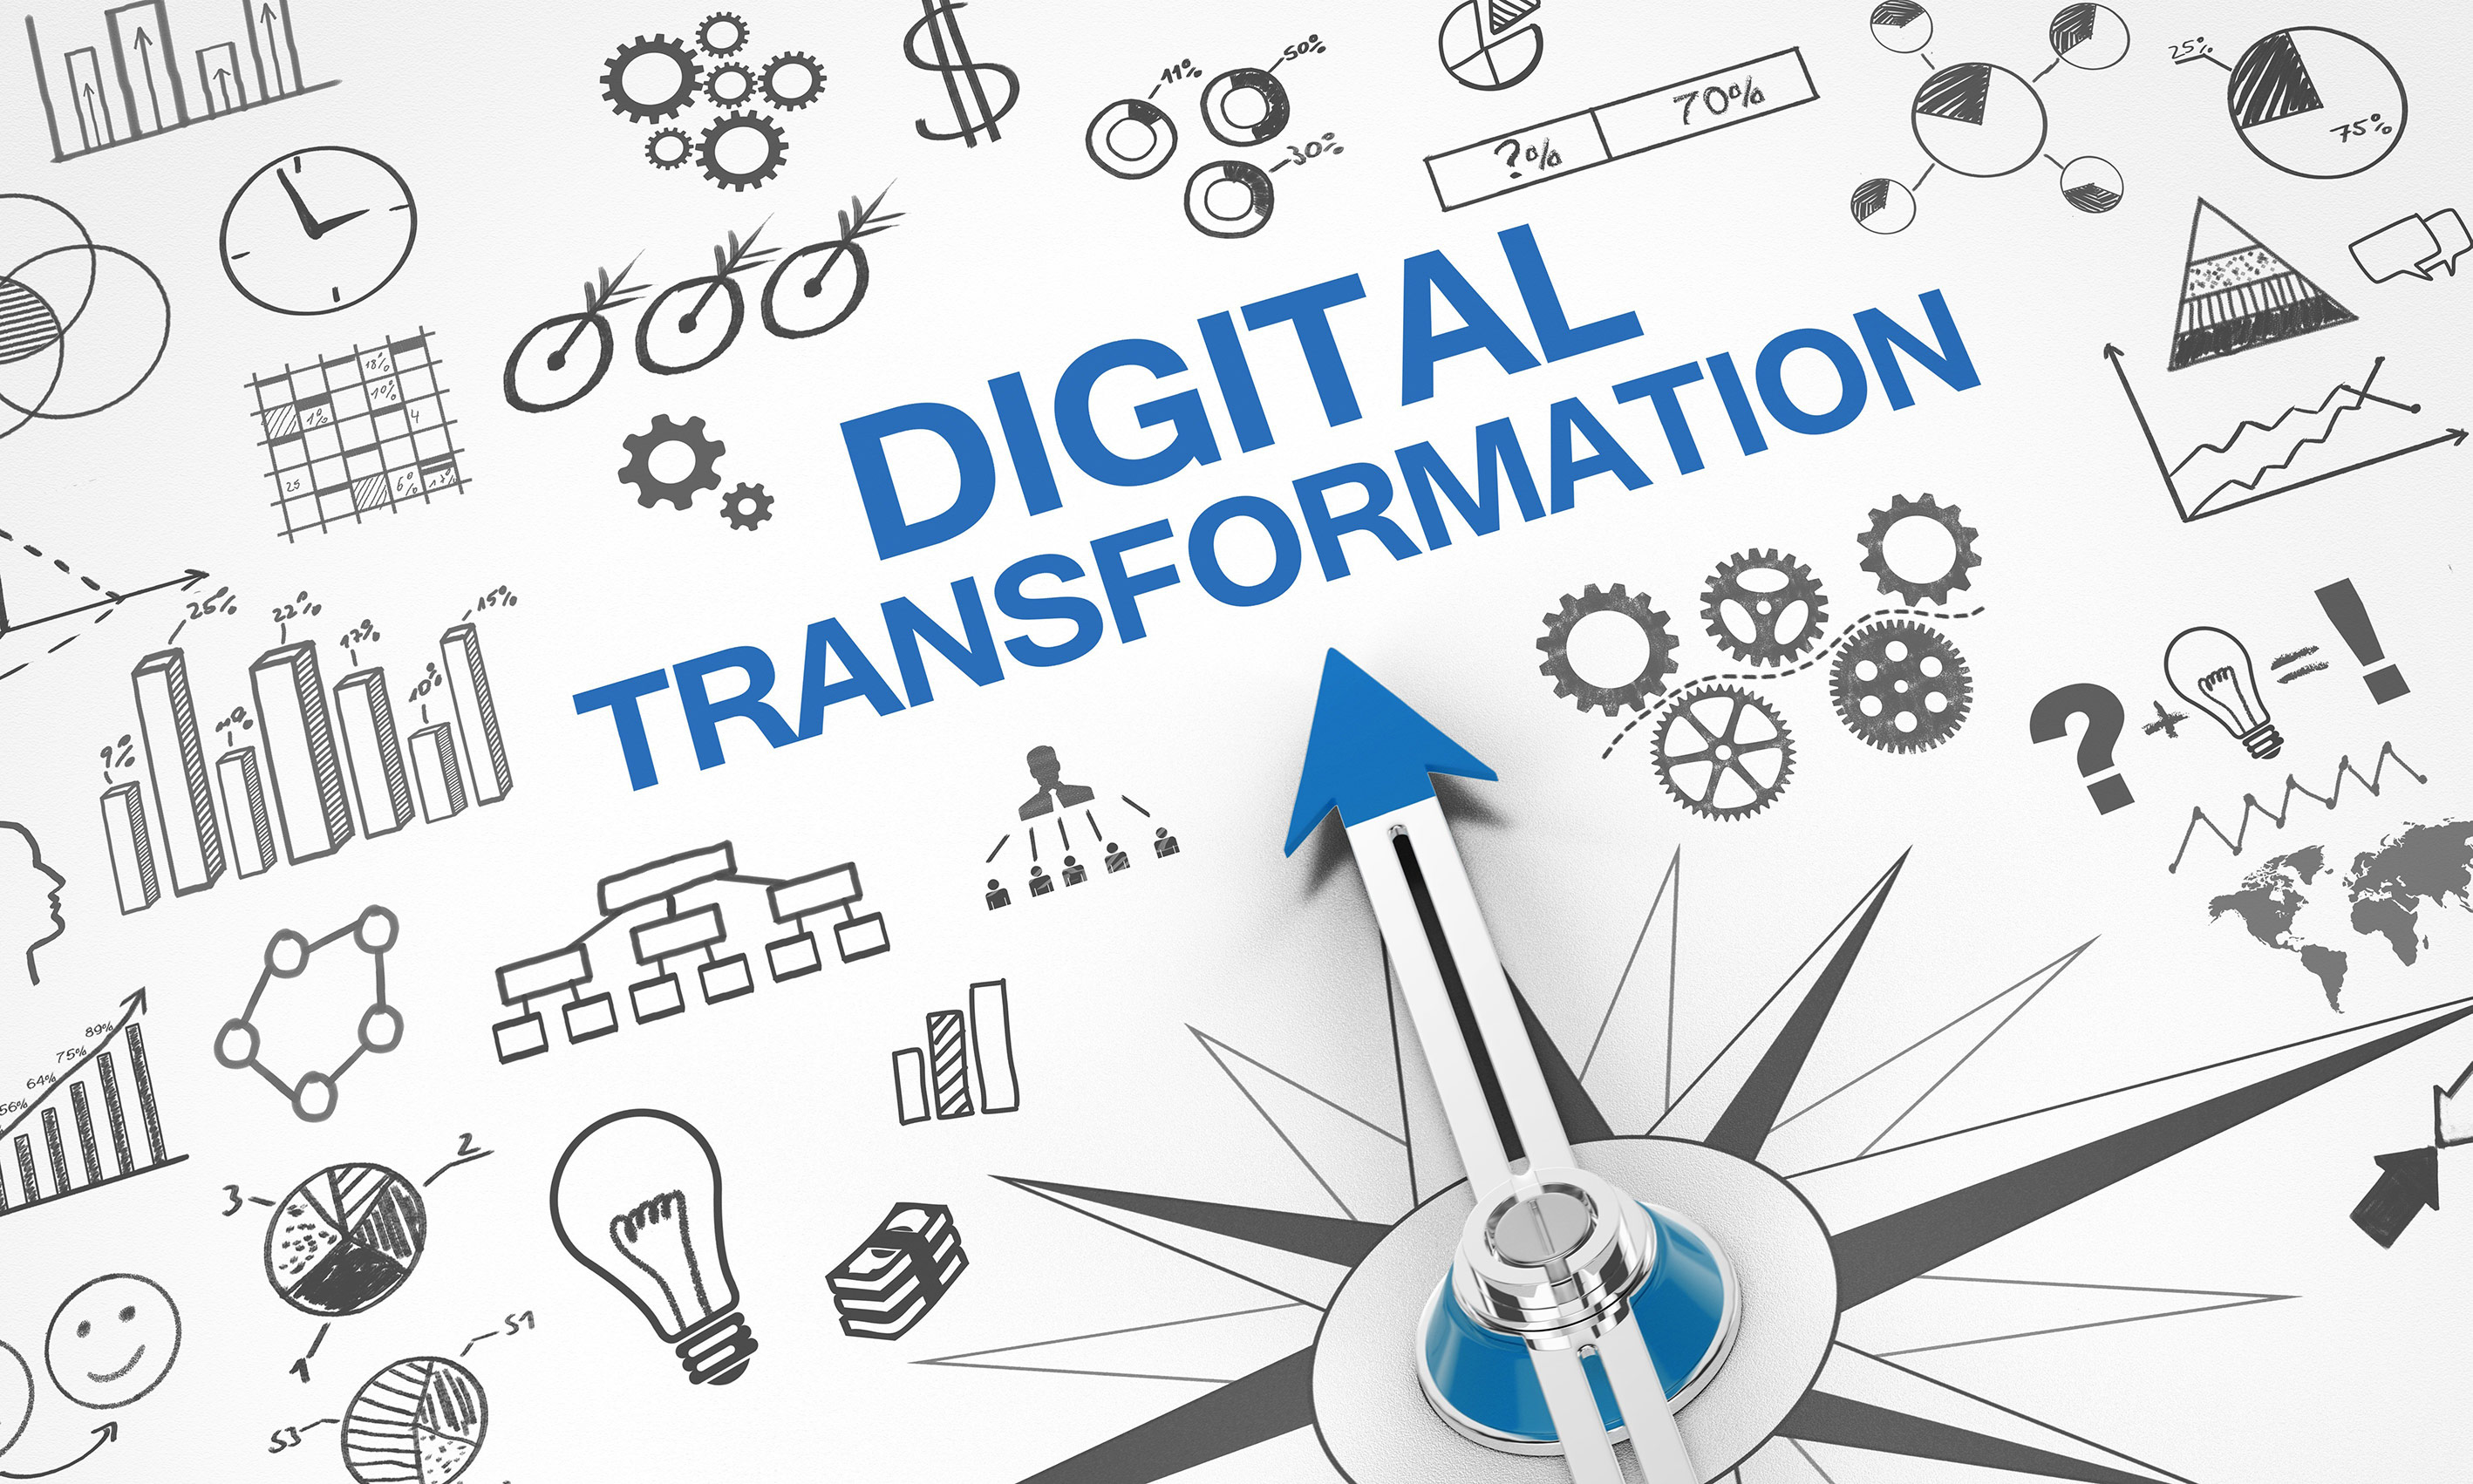 SMEs should focus their efforts on digital transformation in order to survive